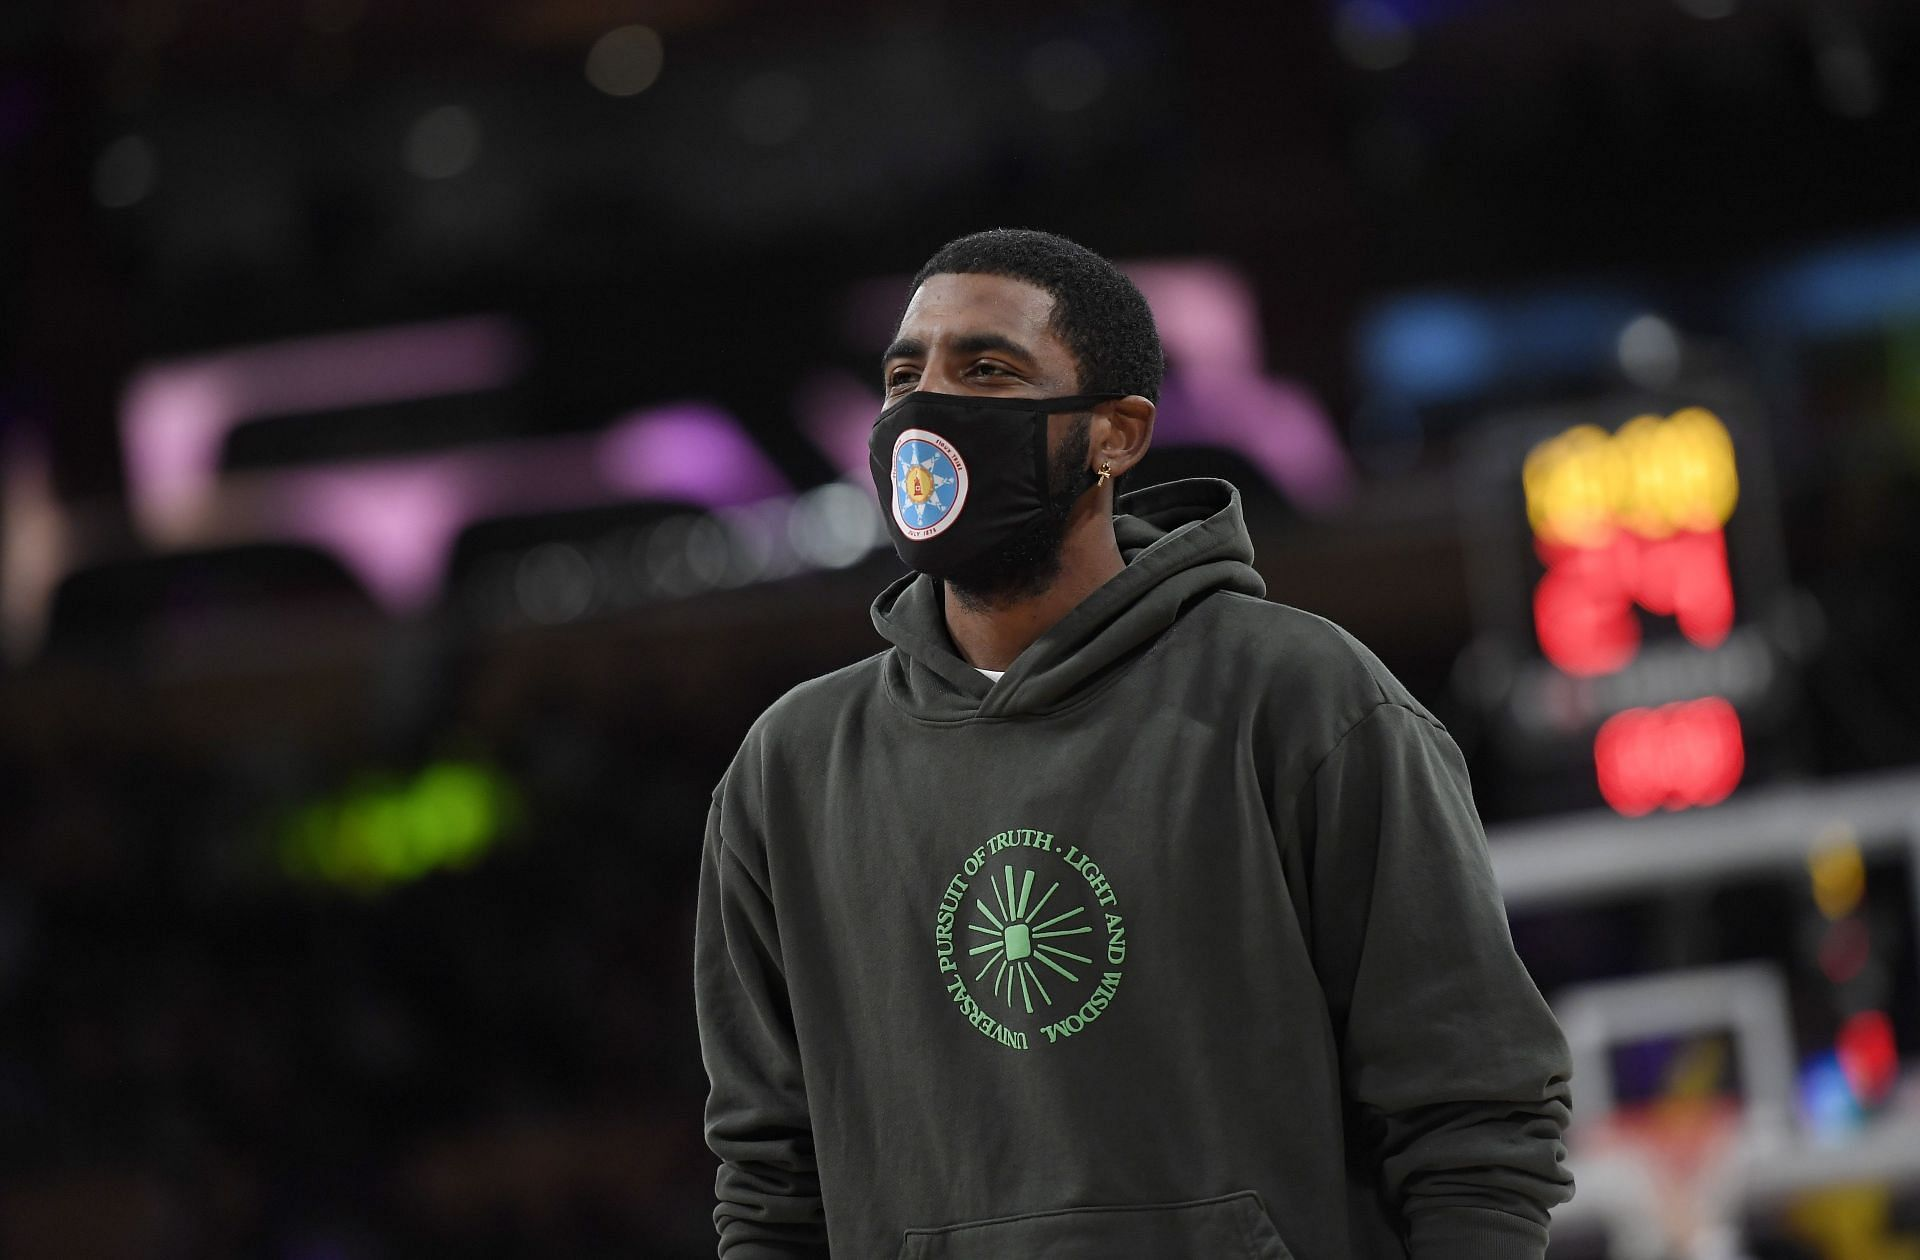 Brooklyn Nets star Kyrie Irving took to Instagram late on Wednesday night to speak his mind on several issues concerning him